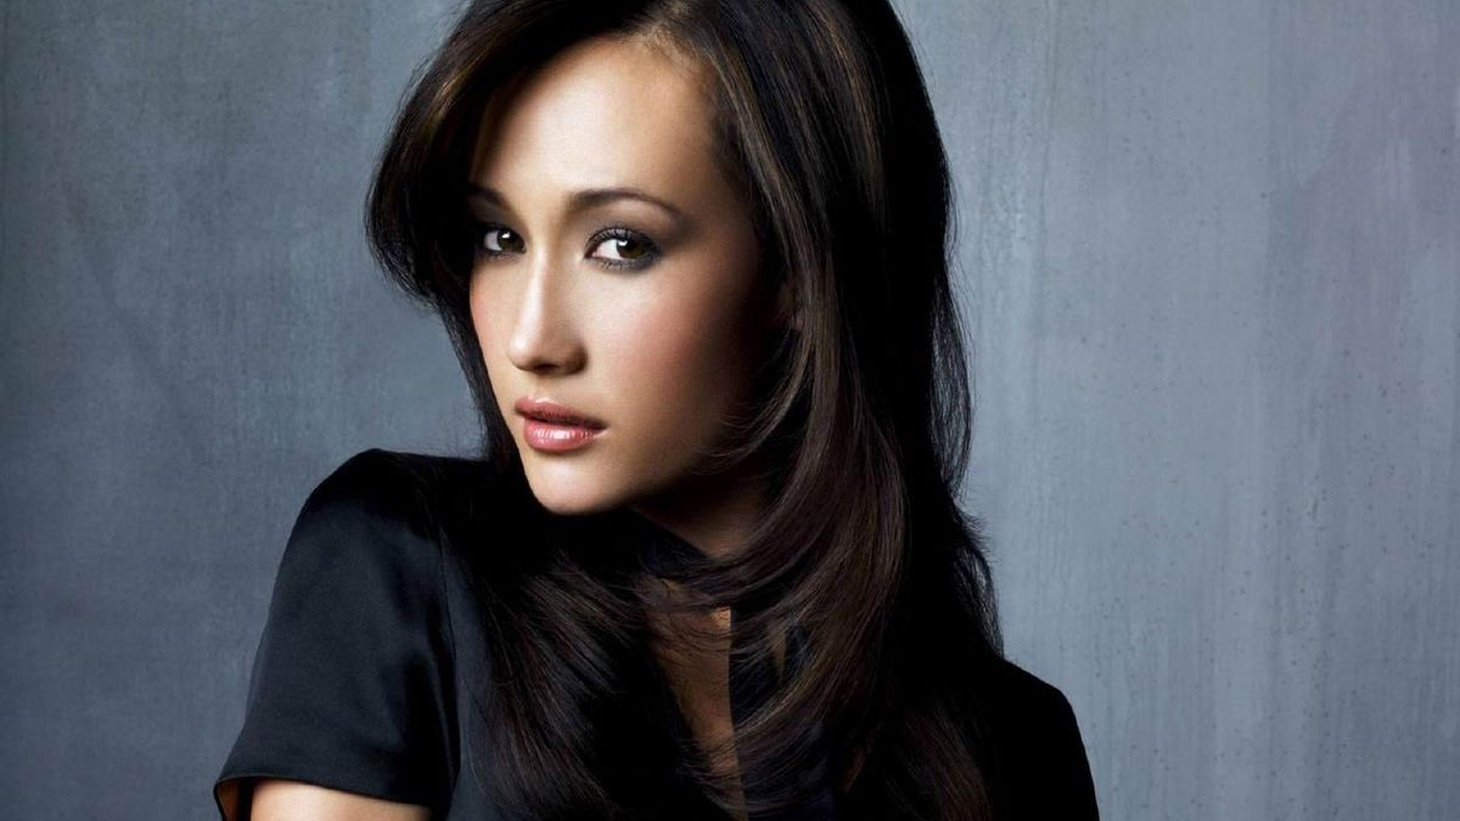 Actress and model Maggie Q talks about growing up in Hawaii and shares some 80's favorites, from hair metal to hip hop.